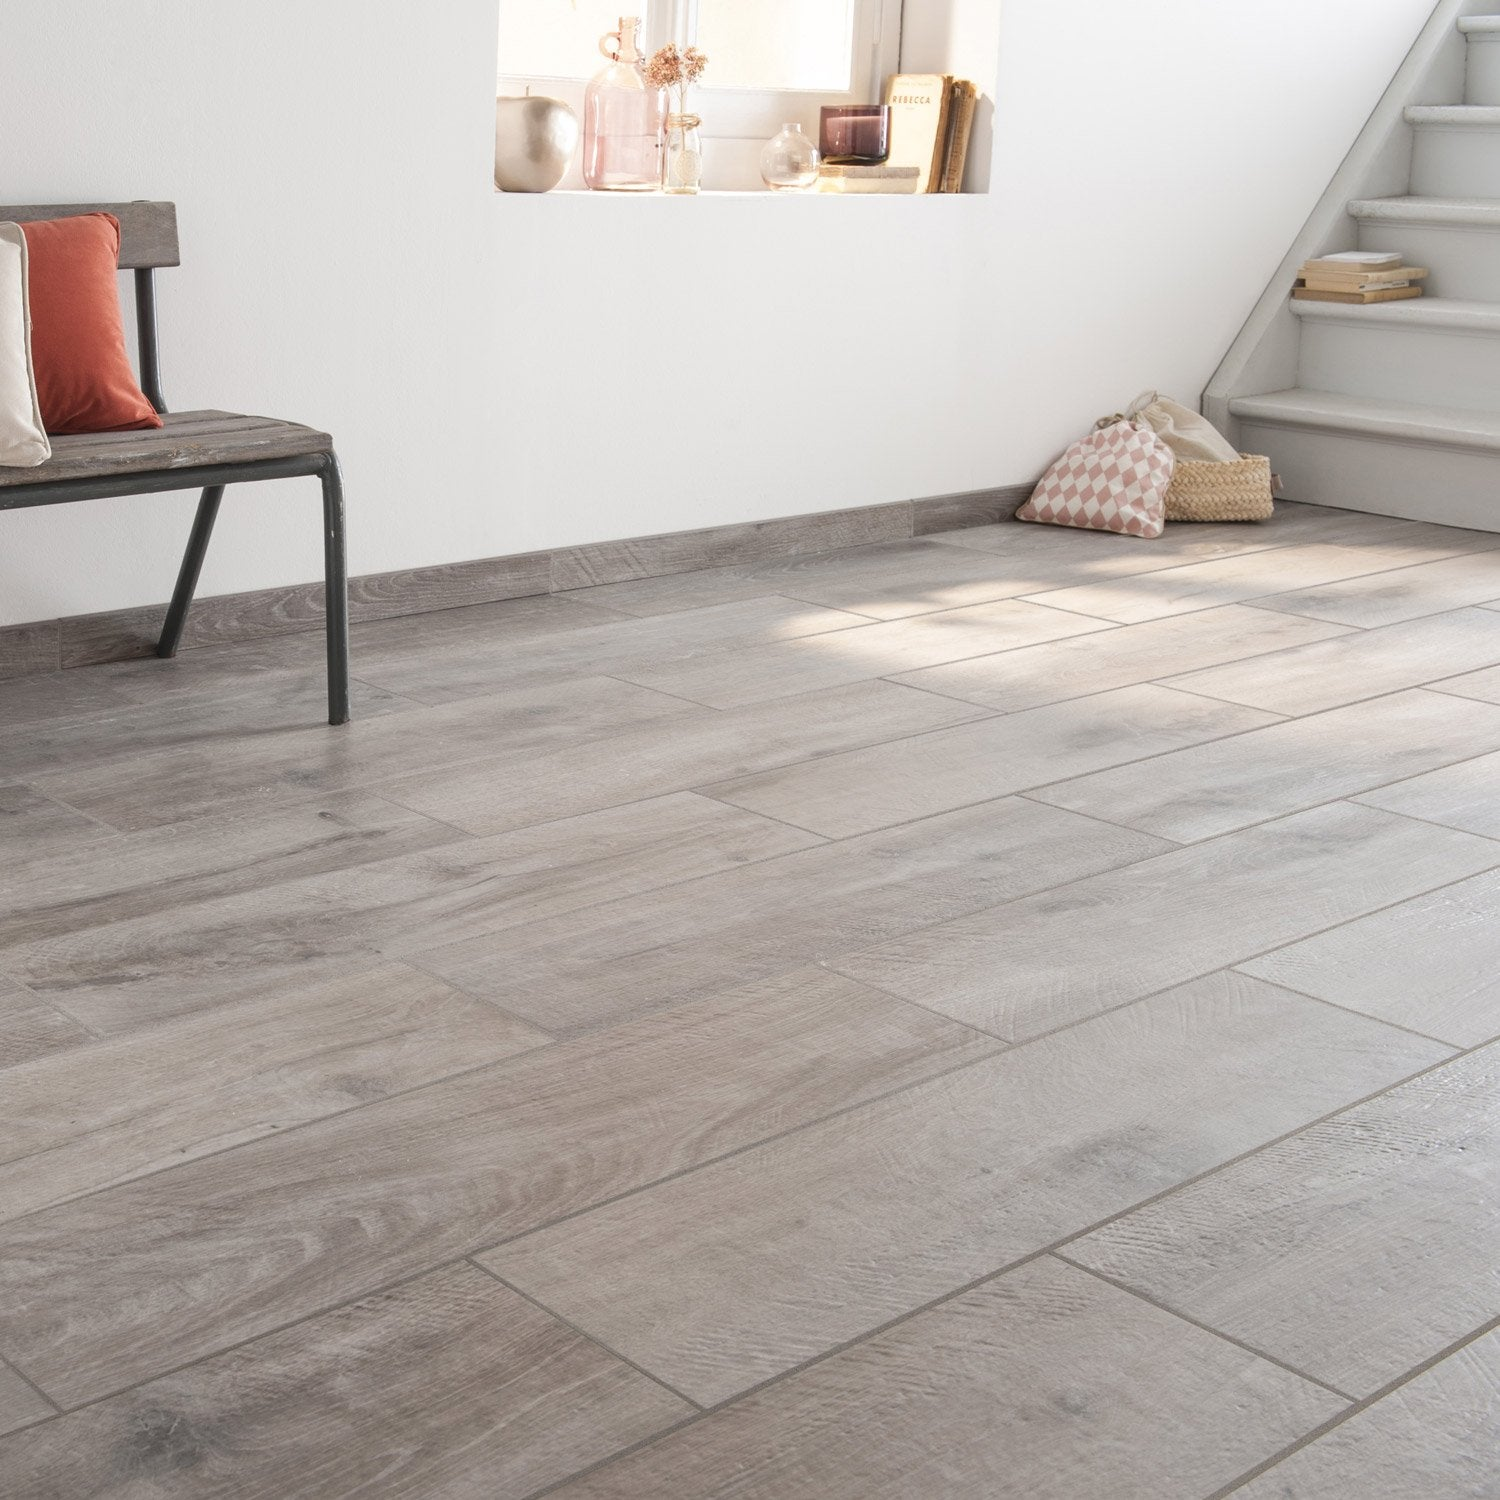 Carrelage effet parquet gris 28 images du carrelage for Carrelage parquet